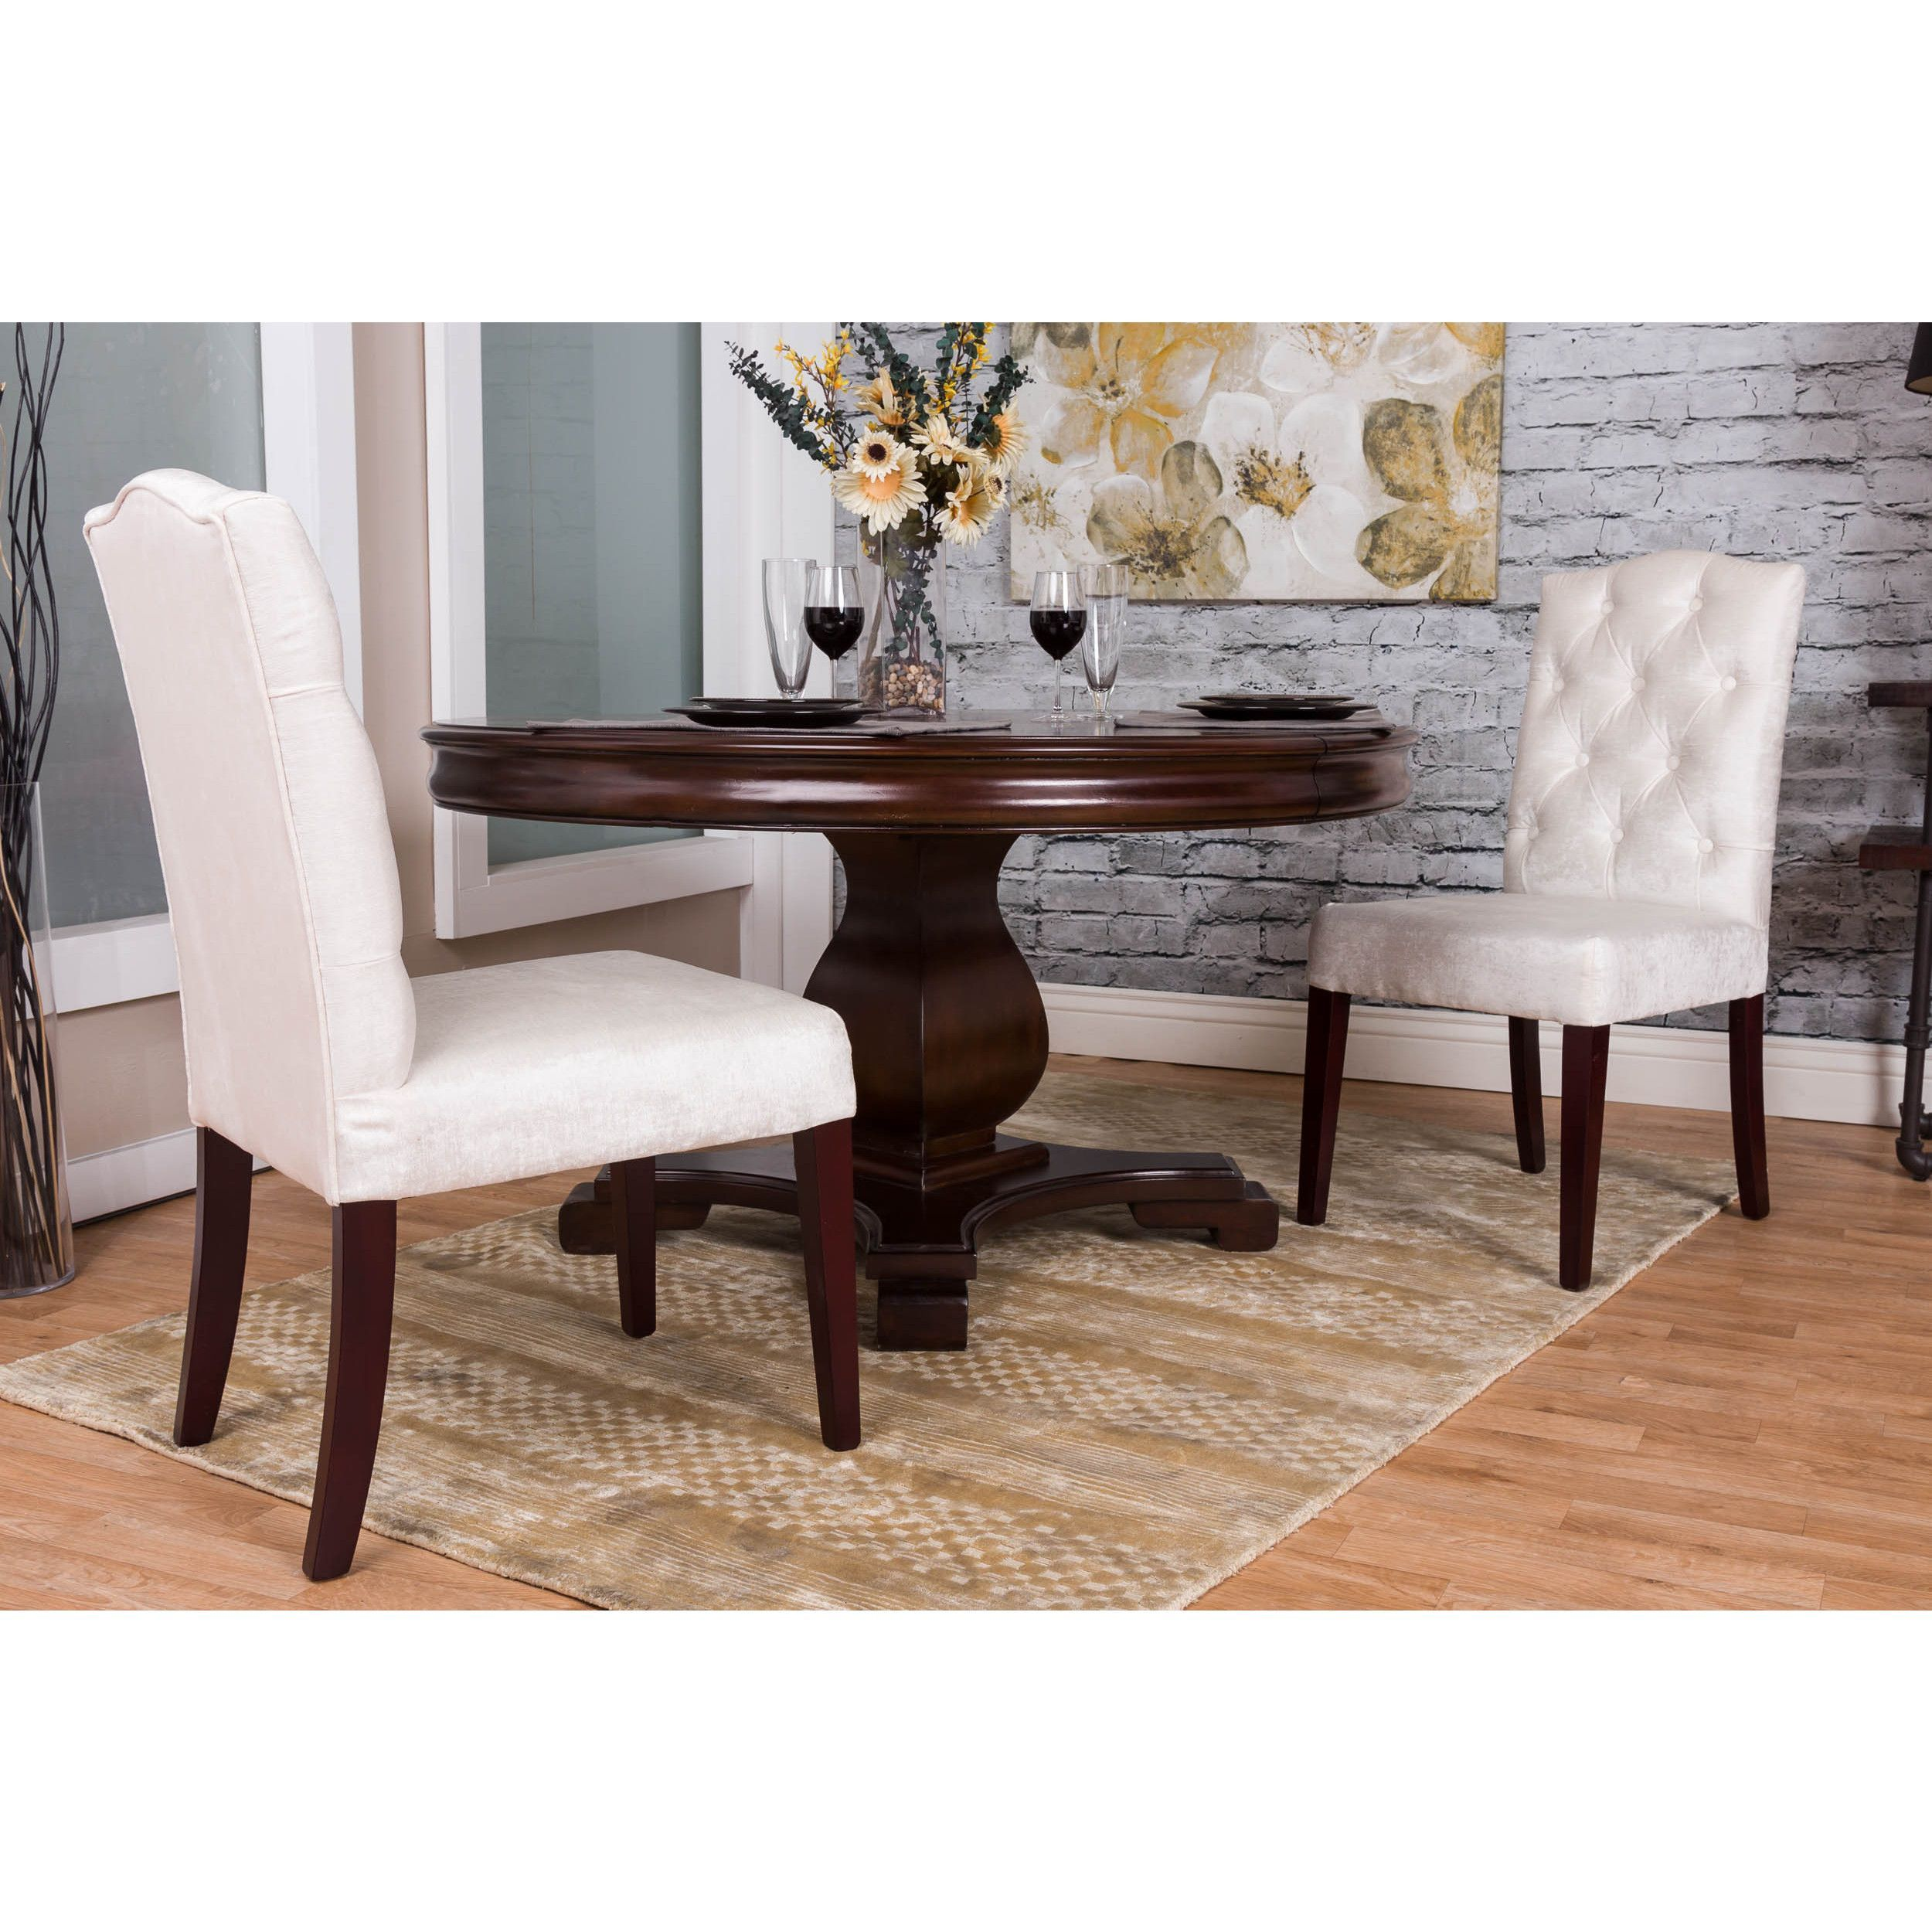 Somette Ivory Tufted Chenille Dining Chair Set of 2 Ivory Tufted